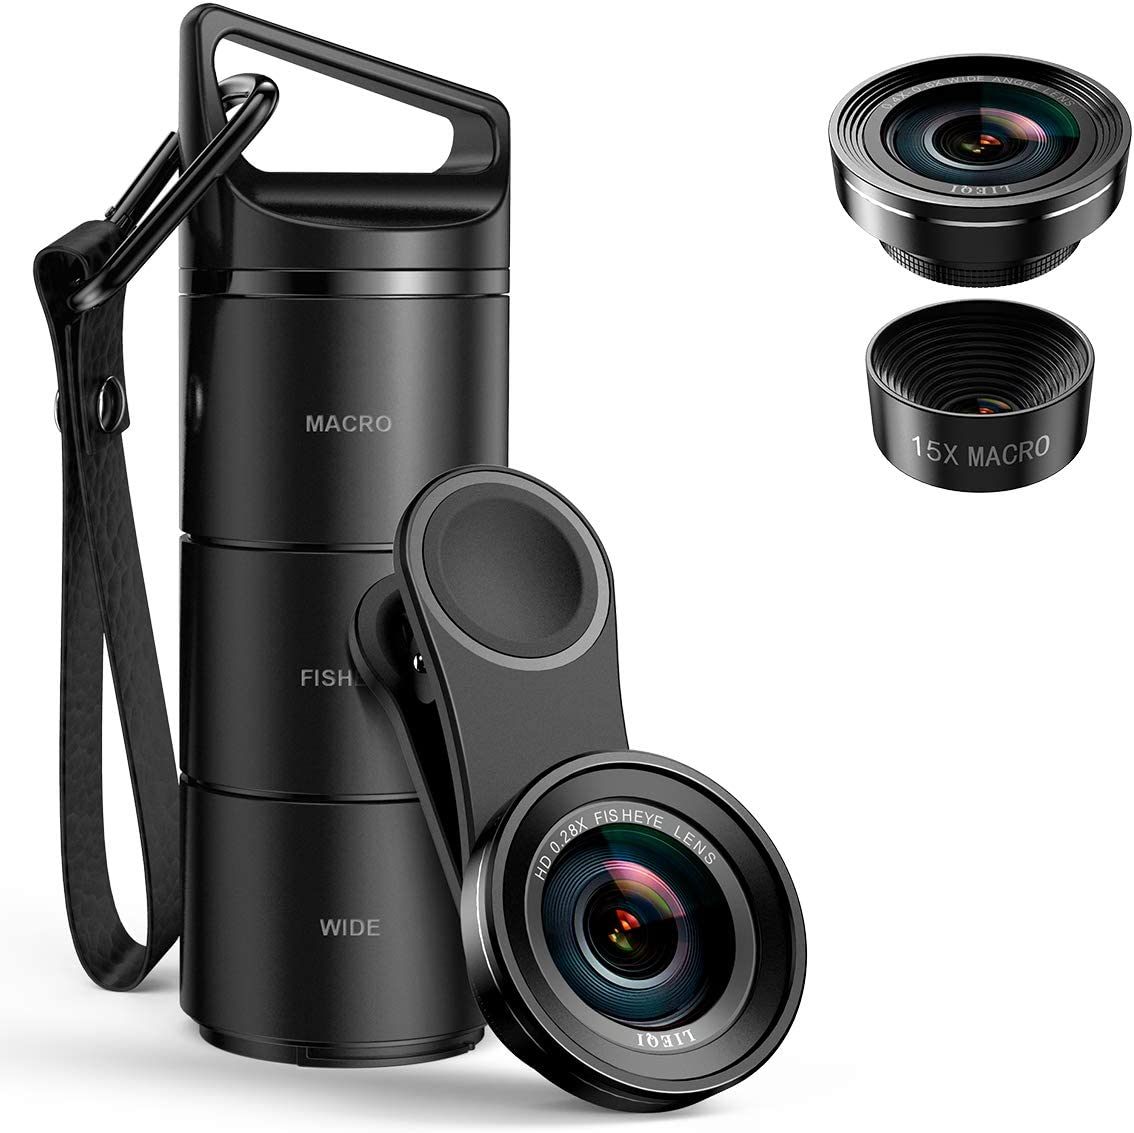 15X Macro Lens Video Chat Vlog etc 0.6X Wide Angle Lens 180/°Fisheye Lens 2020 New Upgraded 3 in 1 Cell Phone Lens Kit for iPhone Phone Camera Lens for TIK Tok Video Samsung Live Show